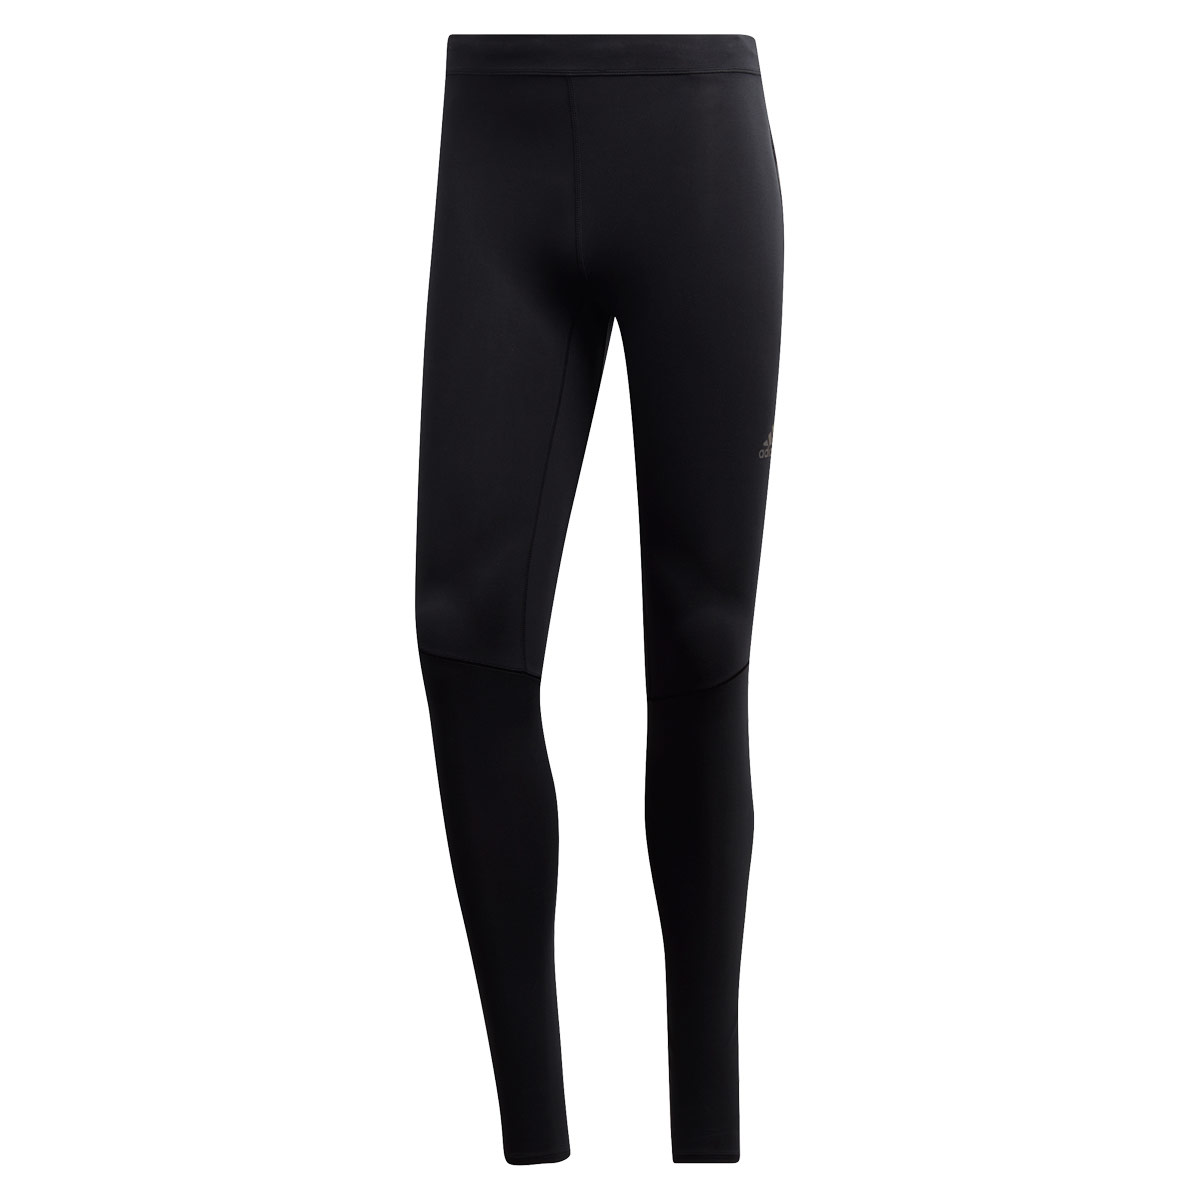 15599c50a adidas Supernova Long Tights - Running trousers for Men - Black